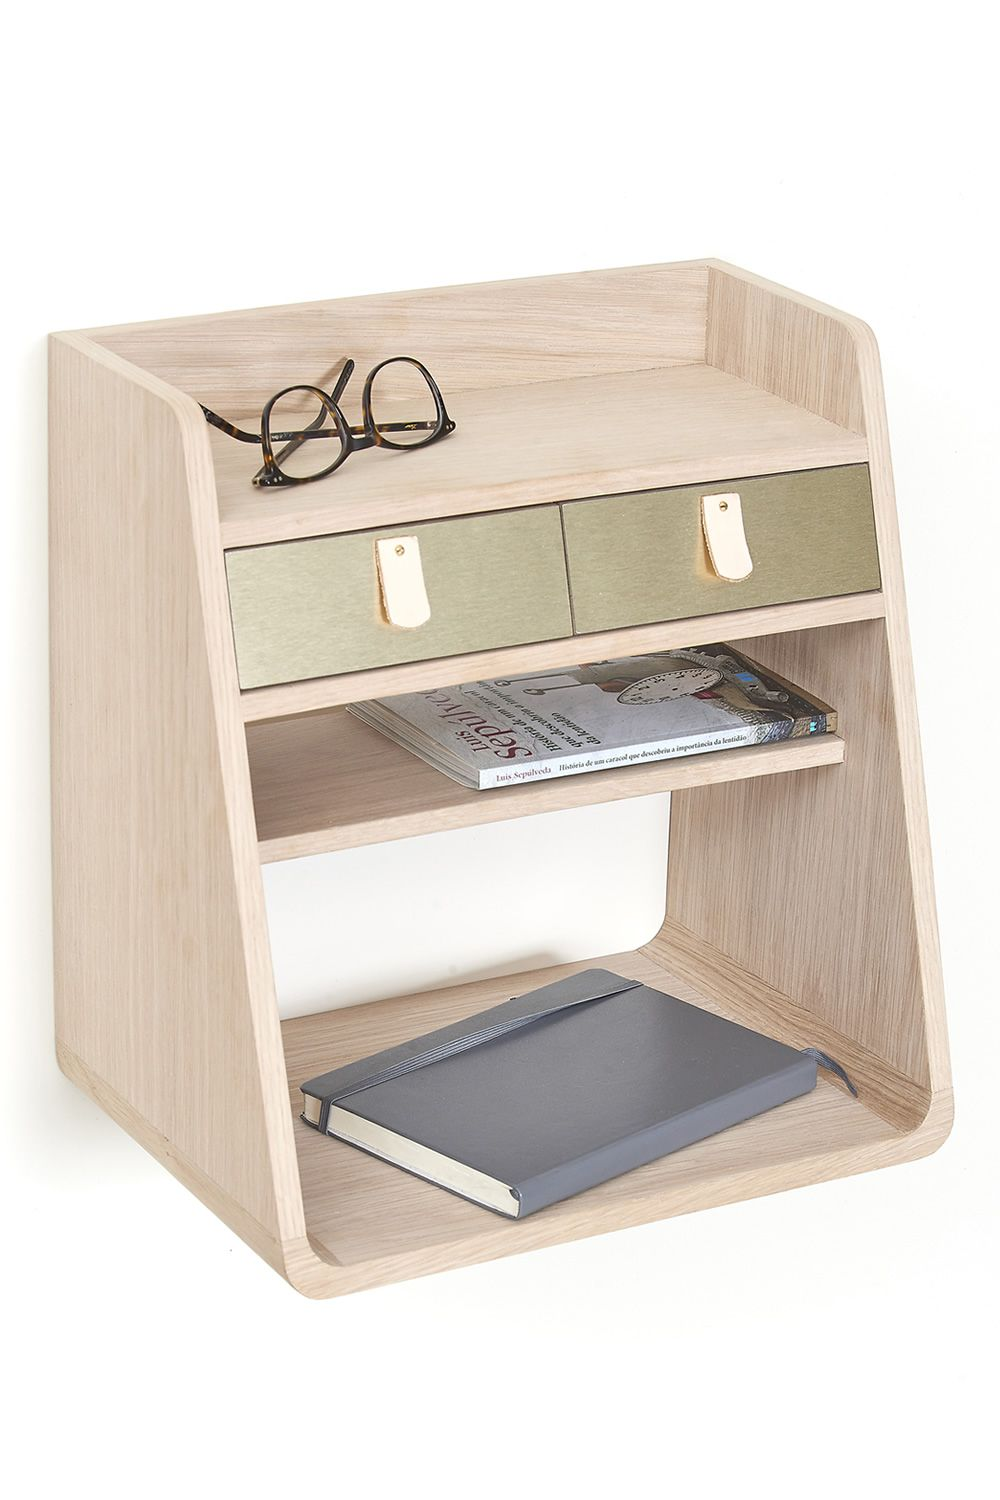 Wall-mounted storage in oak wood, with two drawers in brass colour